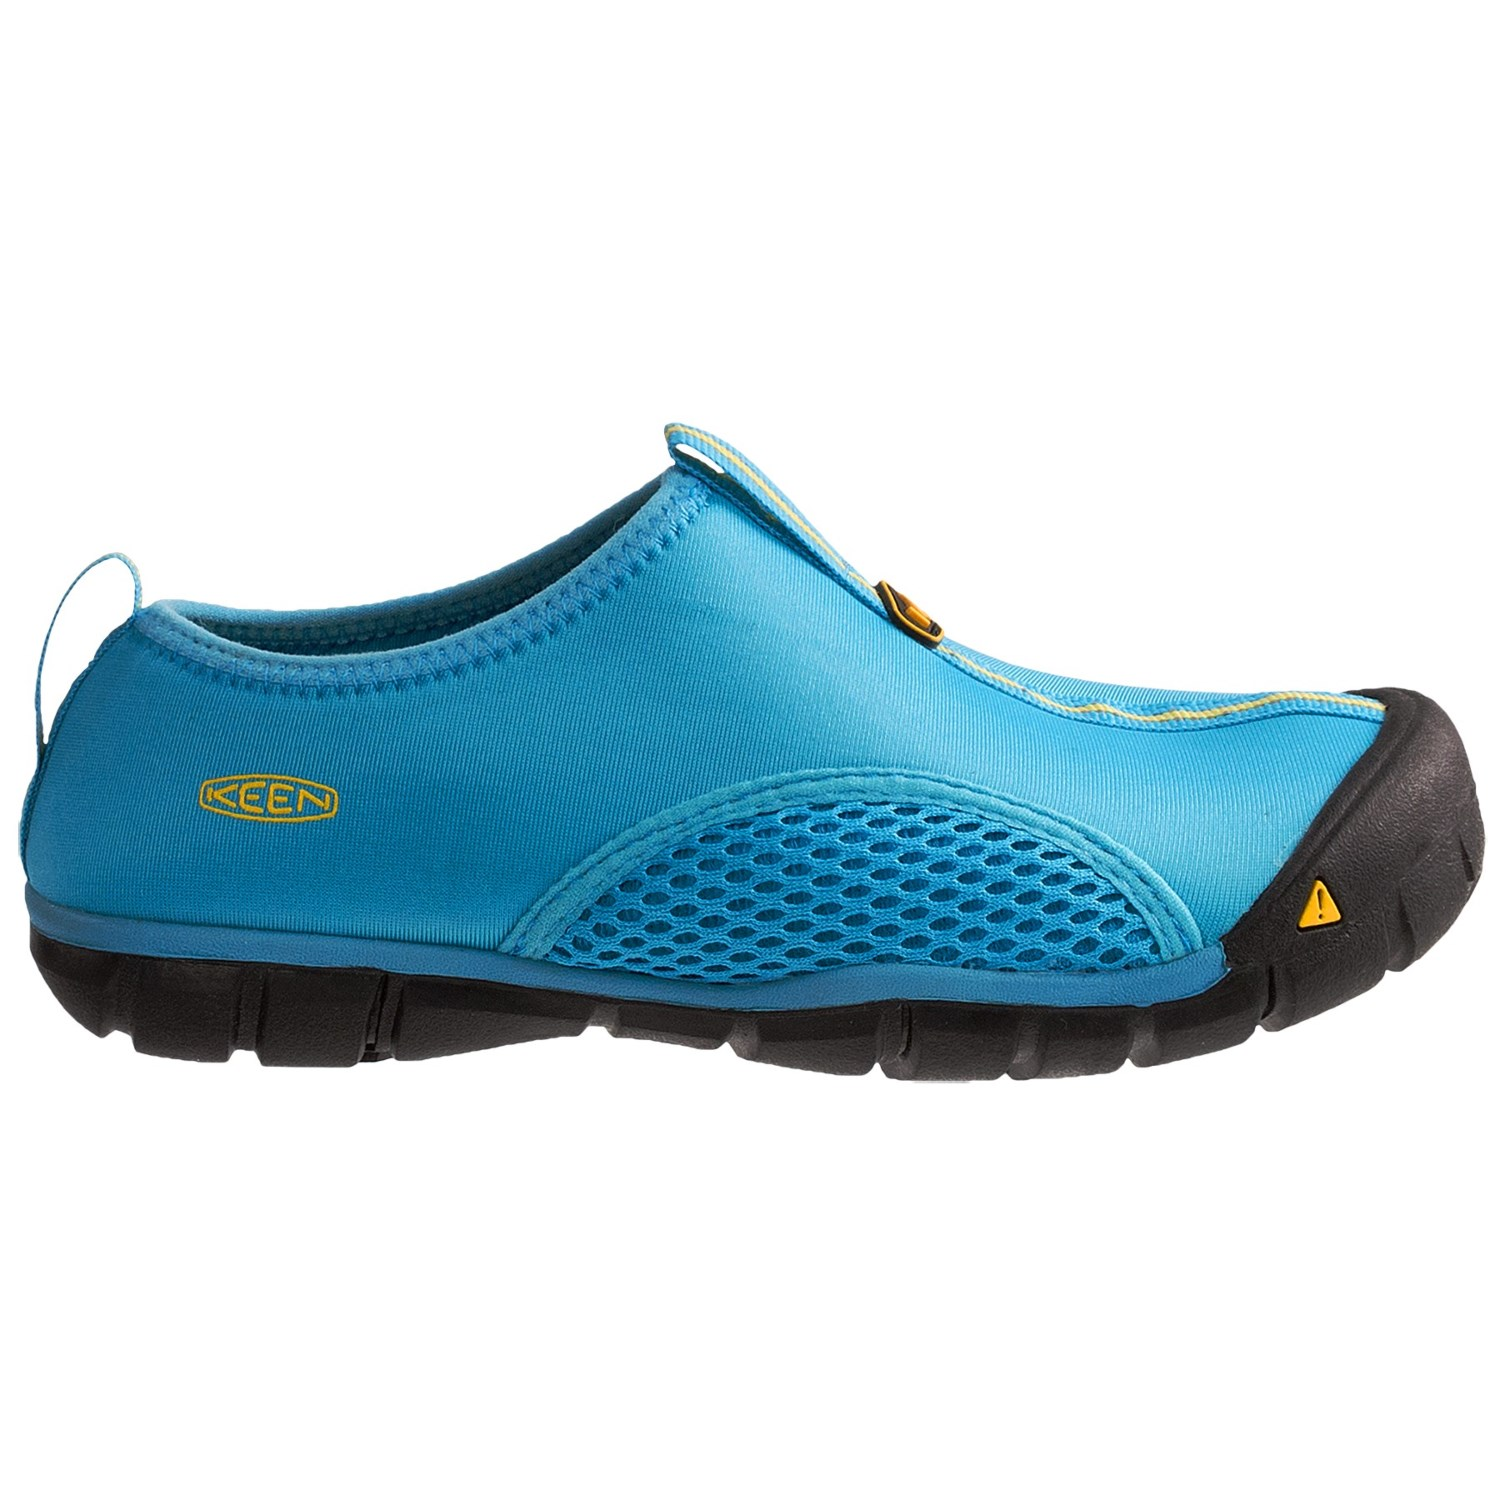 Kids love our water shoes for not only their cool colors and styling, but also for their easy-to-slip-on & off characteristics. Crocs water shoes for kids are a must for summer with all of those aquatic adventures and water-filled fun, so grab a pair today! product reviews & ratings.